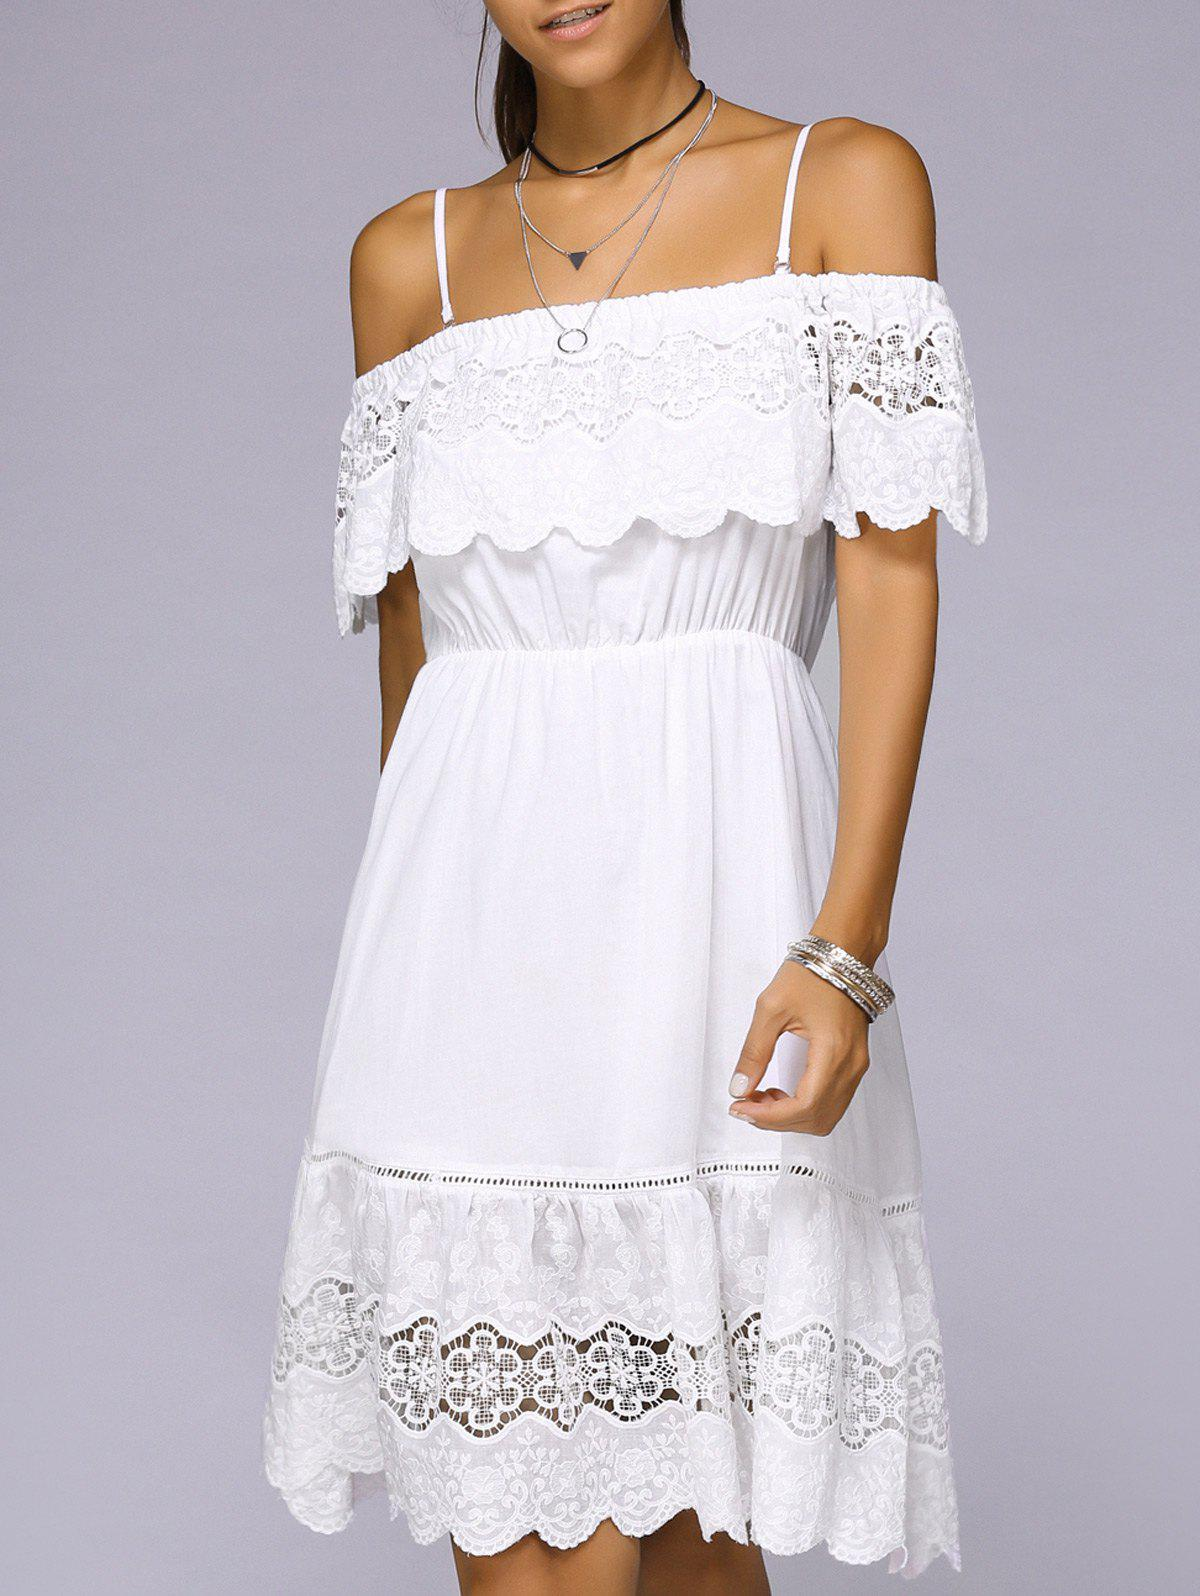 Spaghetti Strap Crocheting White Mini Dress - WHITE L